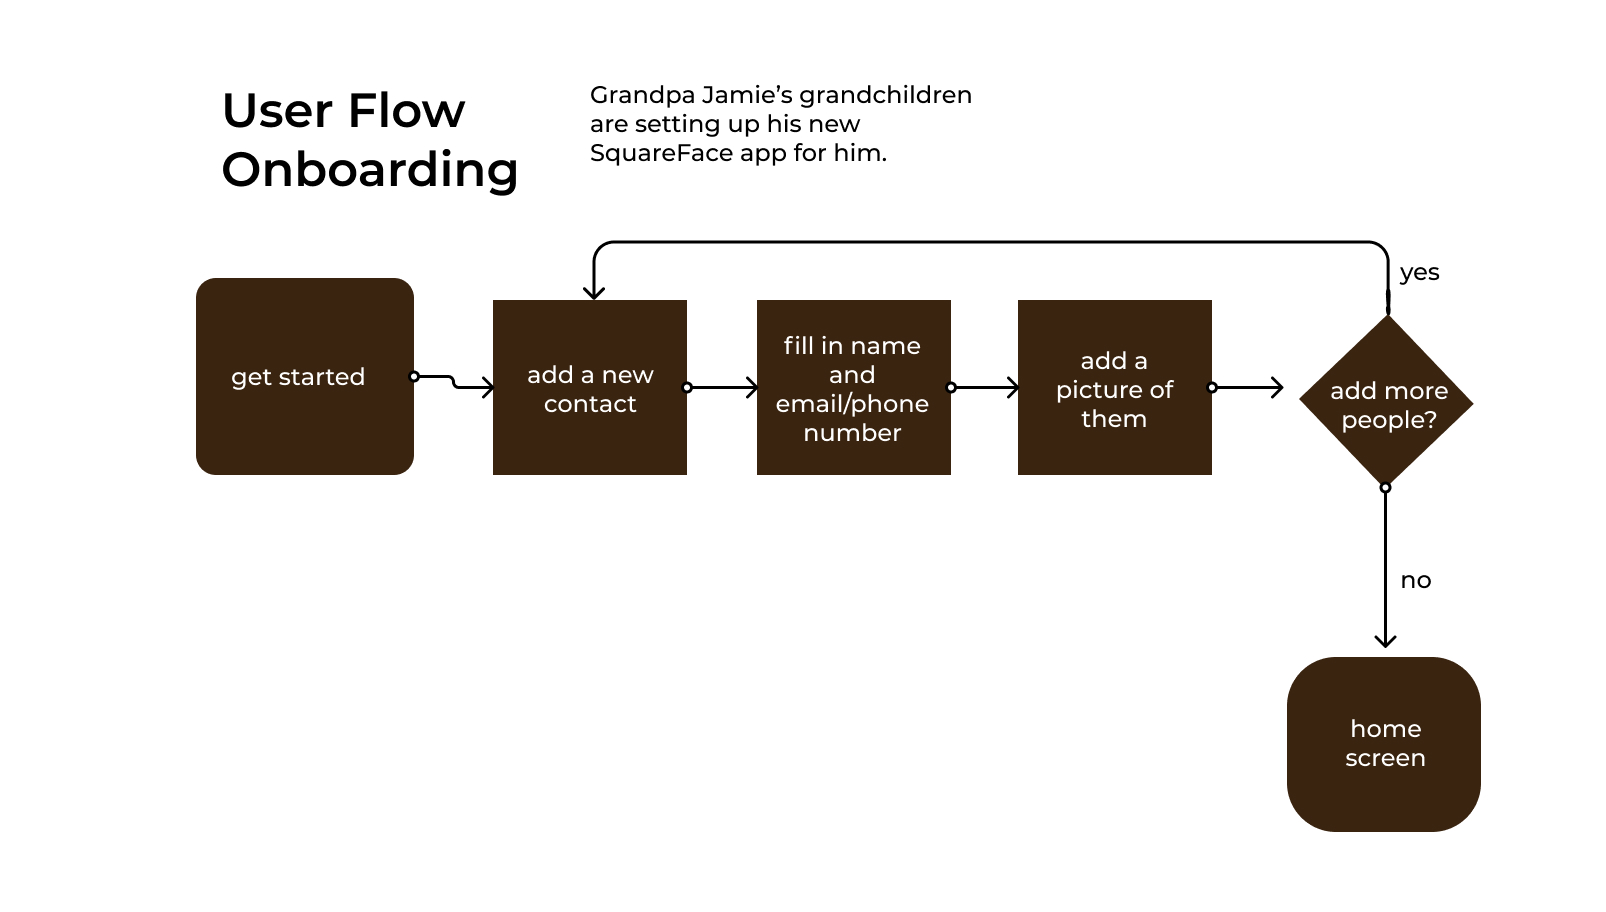 A digitized version of the on-boarding user flow.